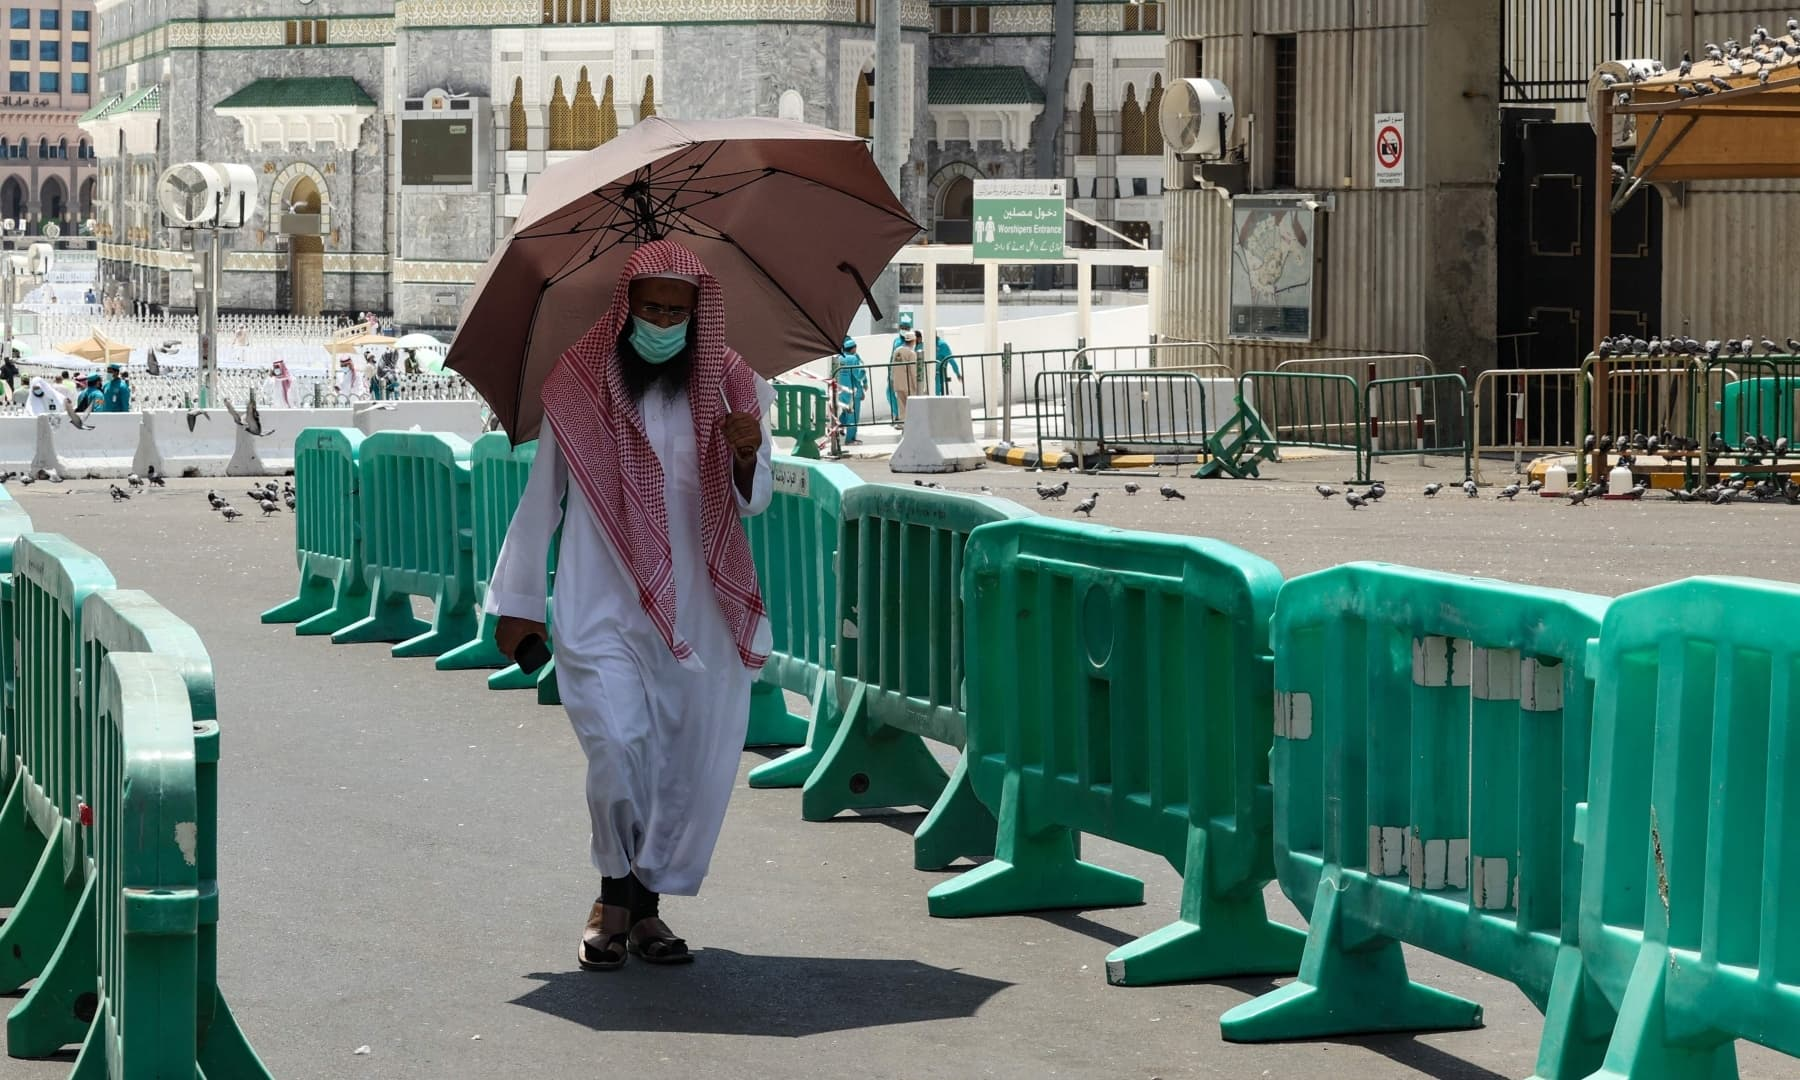 A pilgrim carries an umbrella to protect himself from the sun, in the holy city of Makkah, Saudi Arabia, July 16, 2021. — AFP